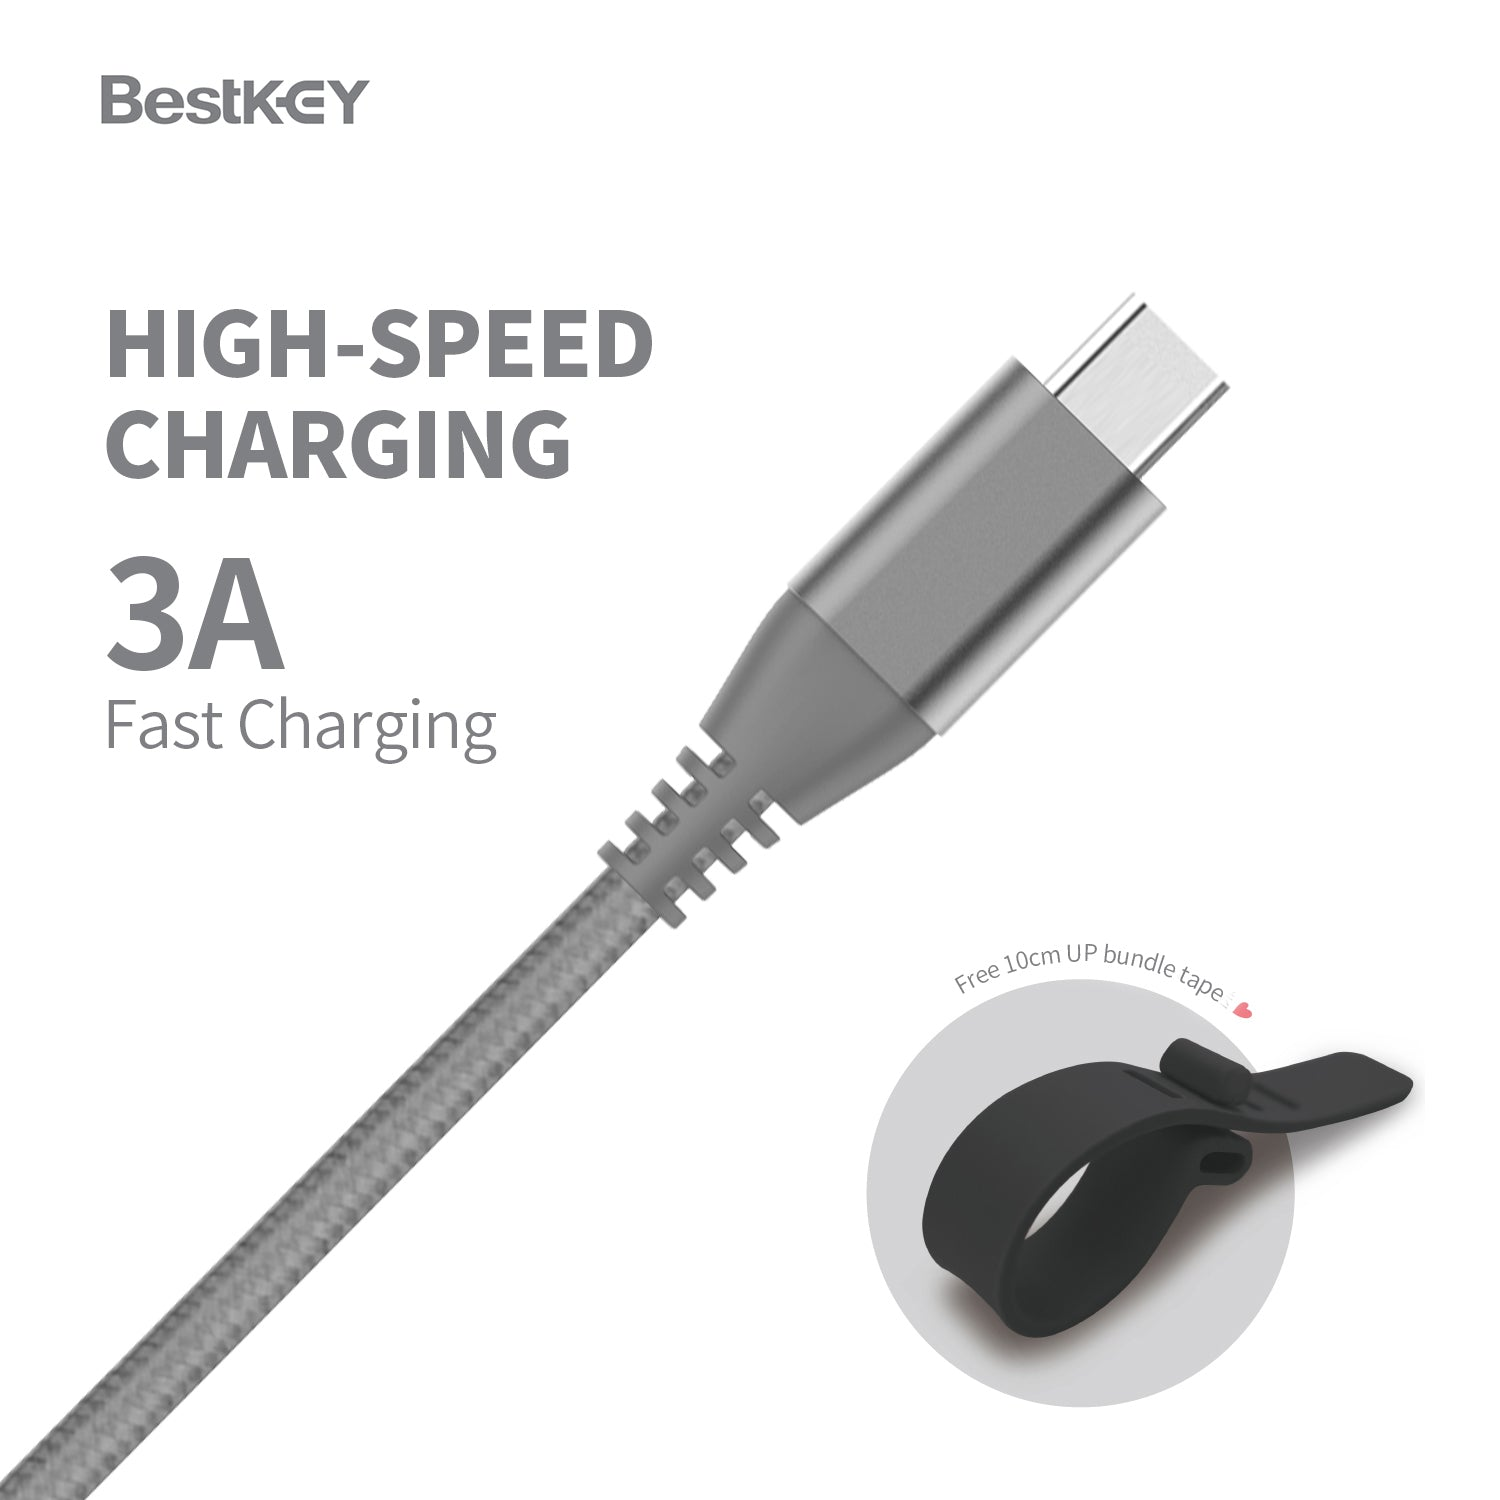 BestKey 3.9 FT Long USB Type C to Type A 3.1 Gen2 Charger Cable 1.2m Grey Nintendo Switch Android Blue 4